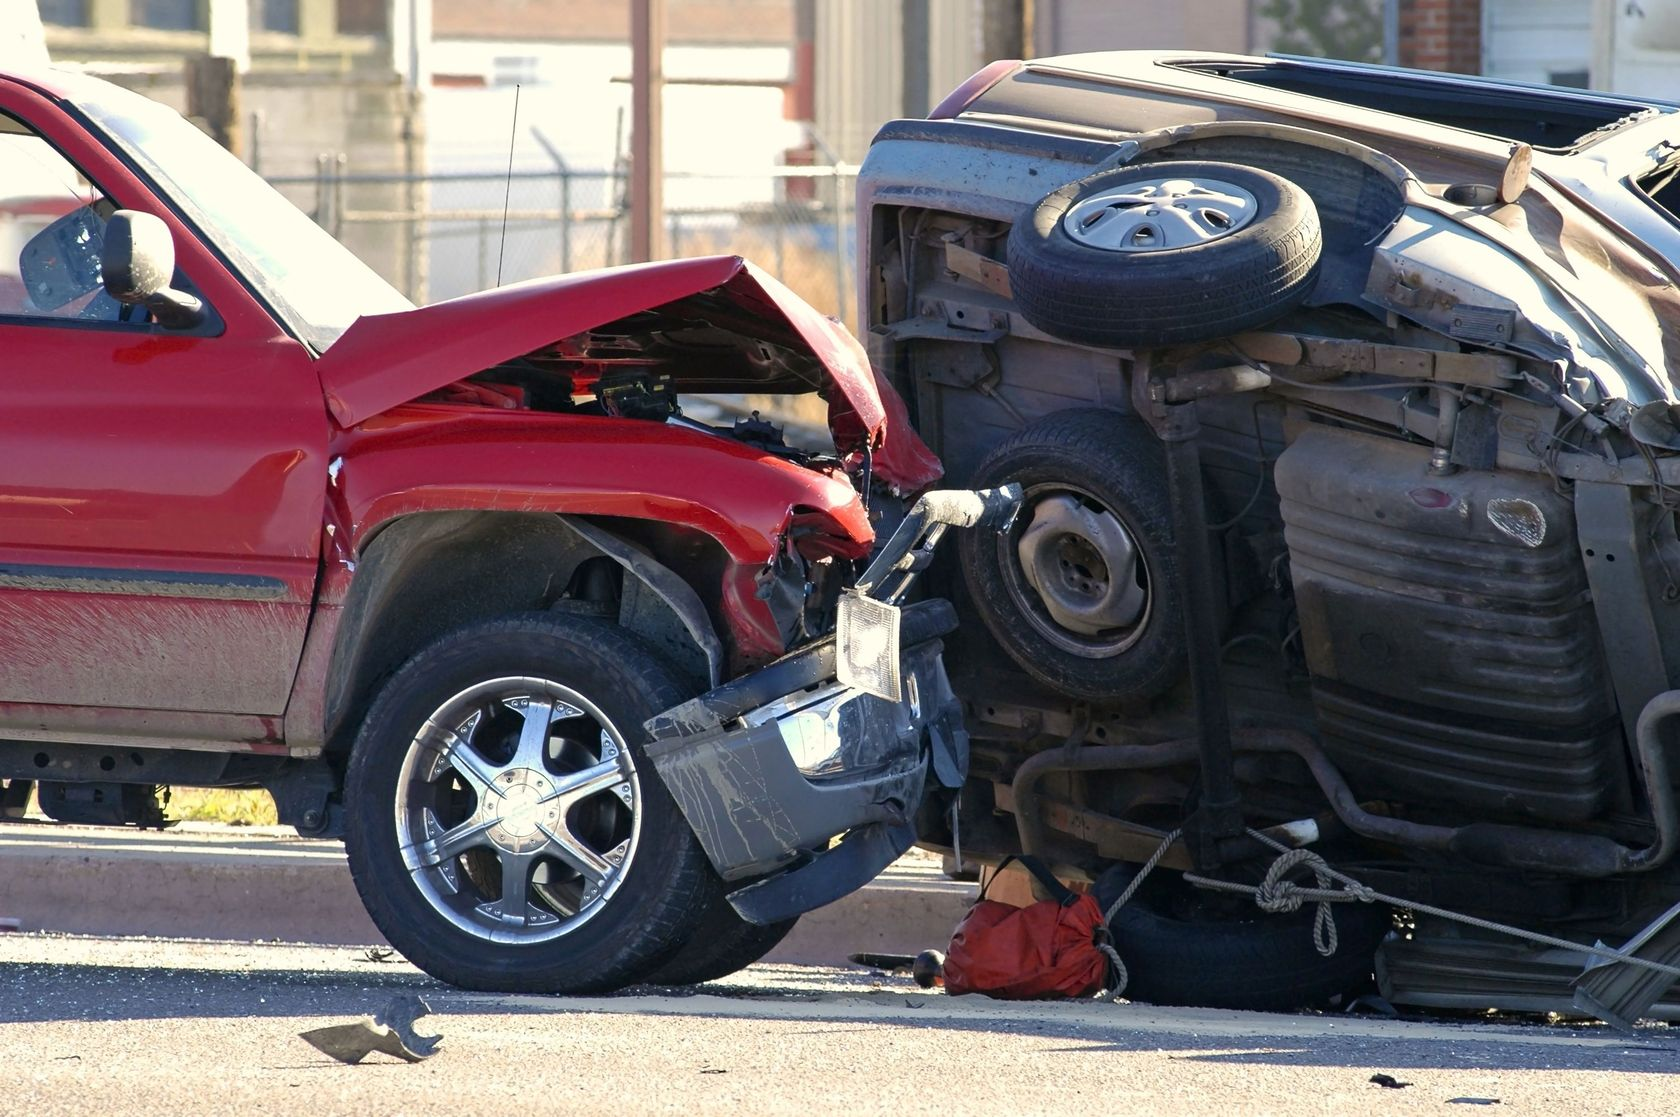 Don't go into shock over the repair estimate after an accident ...